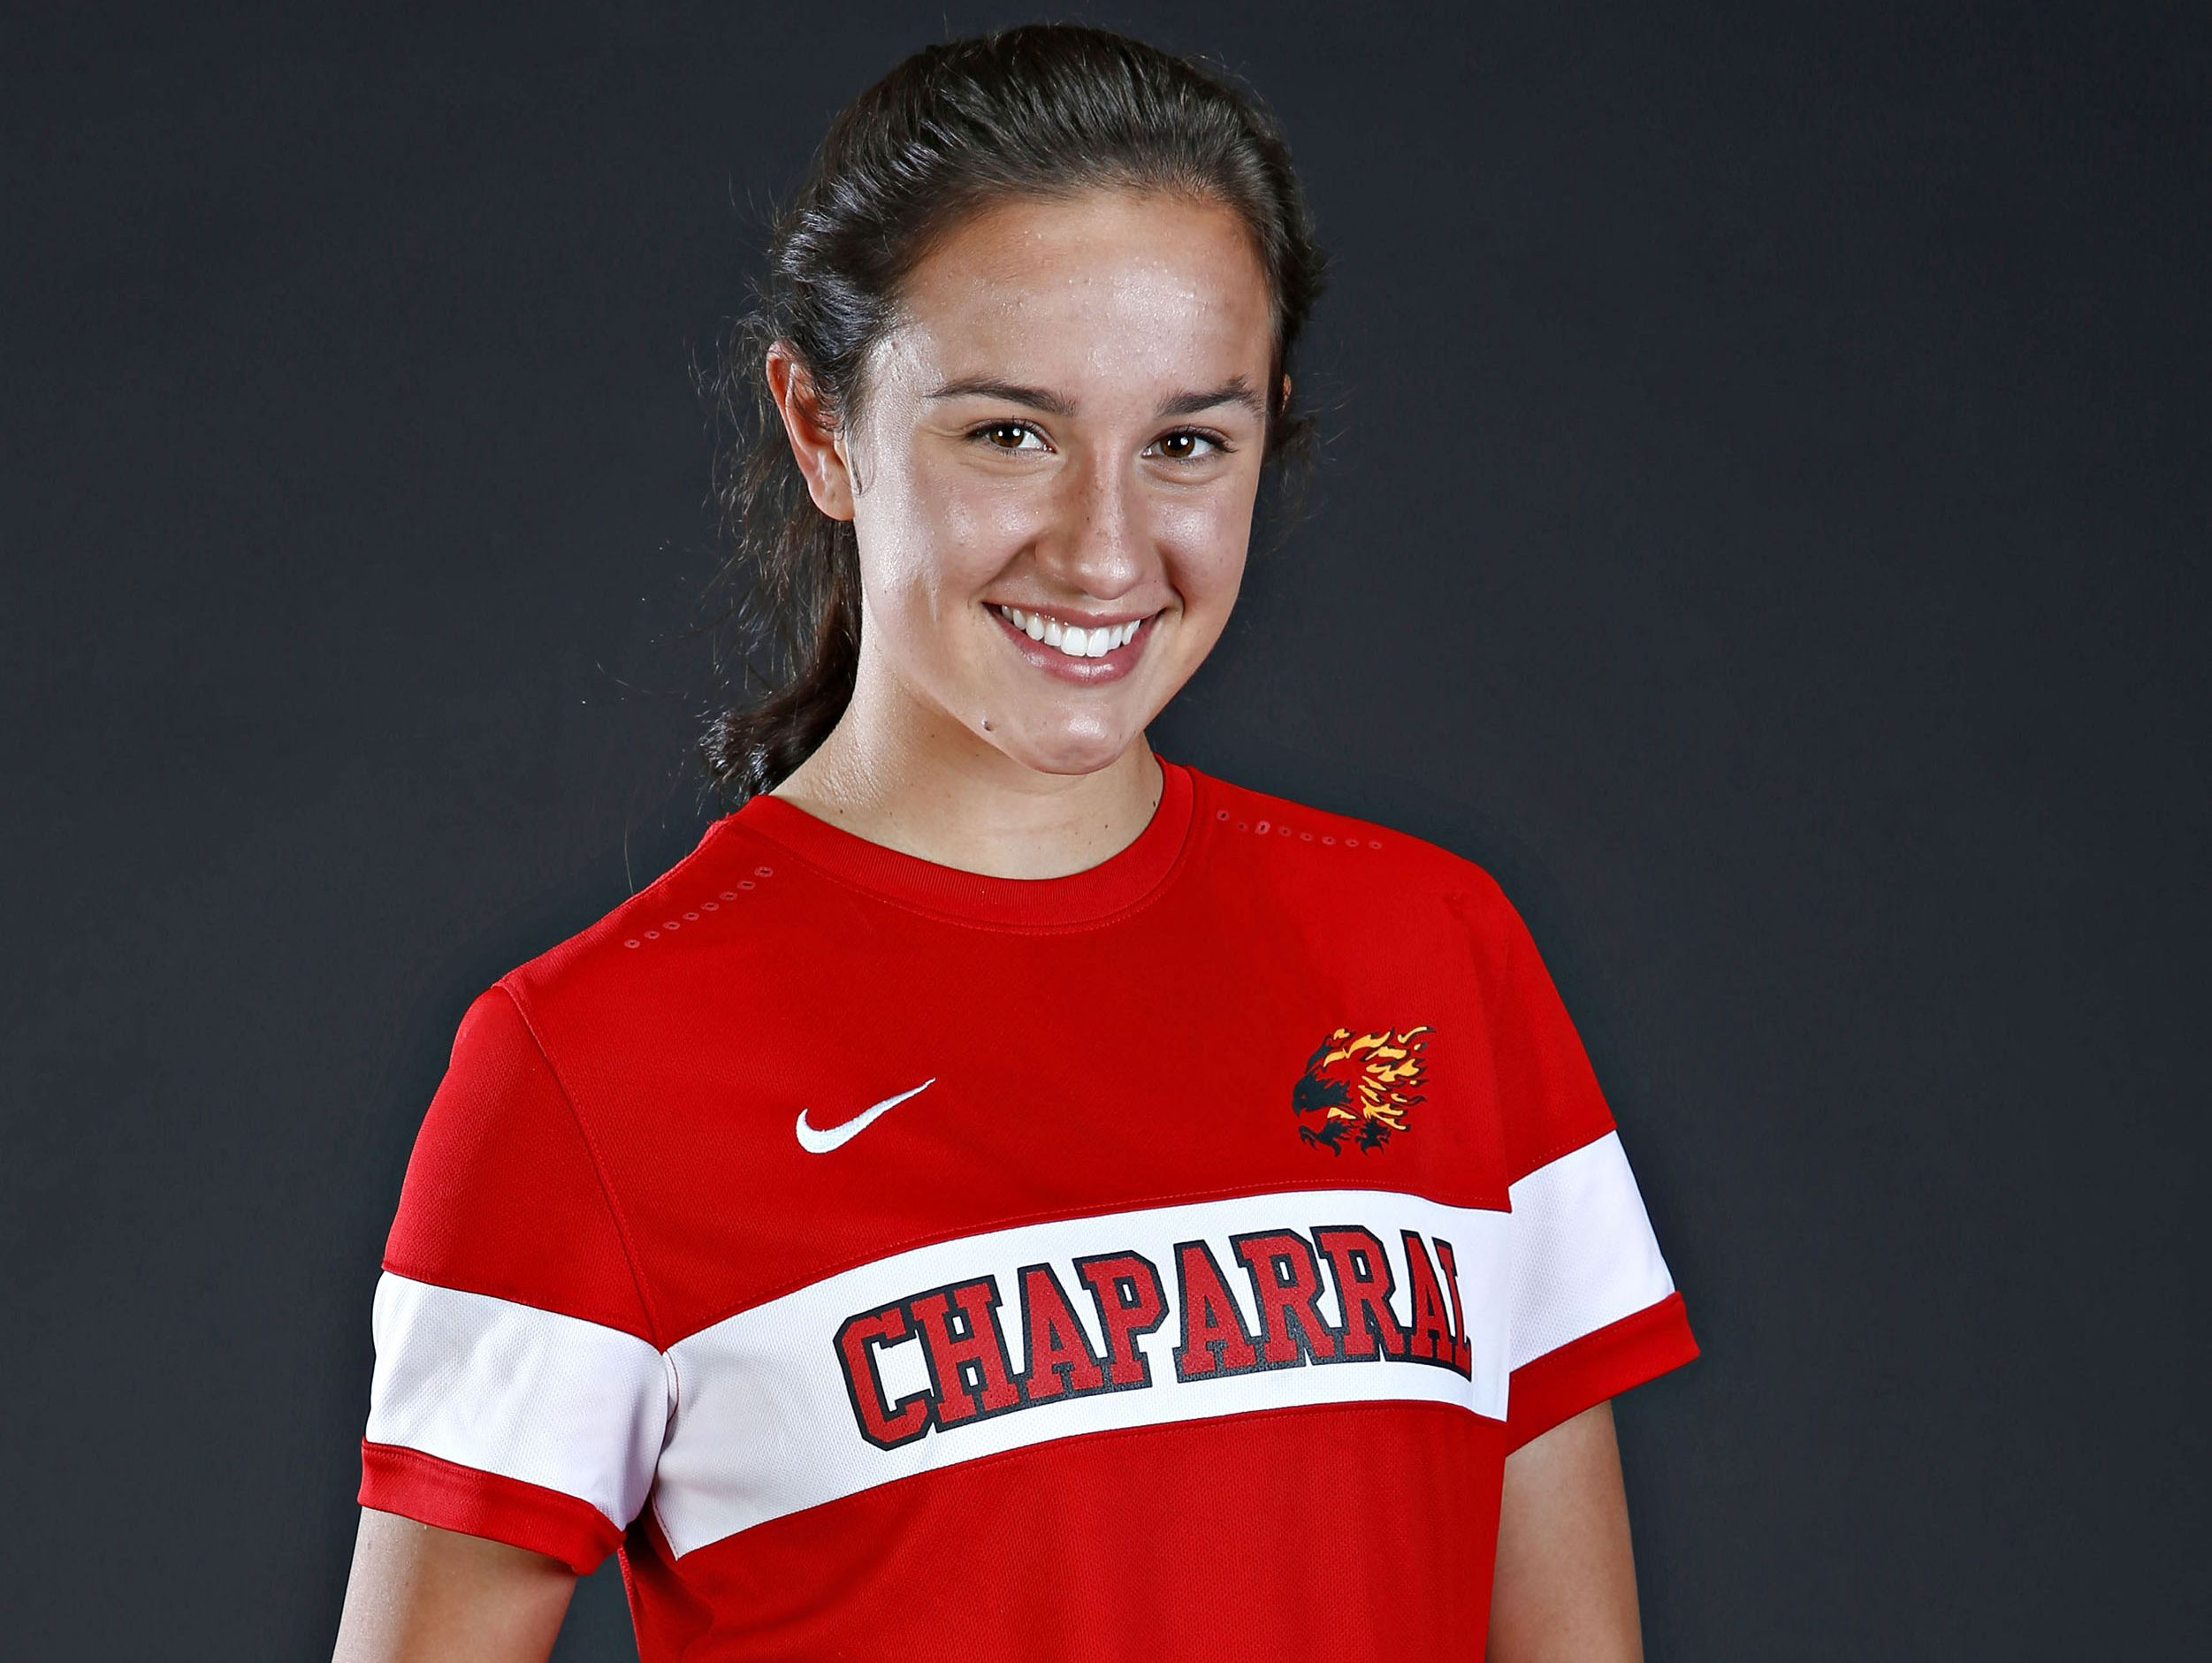 Scottsdale Chaparral soccer player Allison Jorden is the Arizona Sports Awards January Athlete of the Month runner-up presented by La-Z-Boy Furniture Galleries.